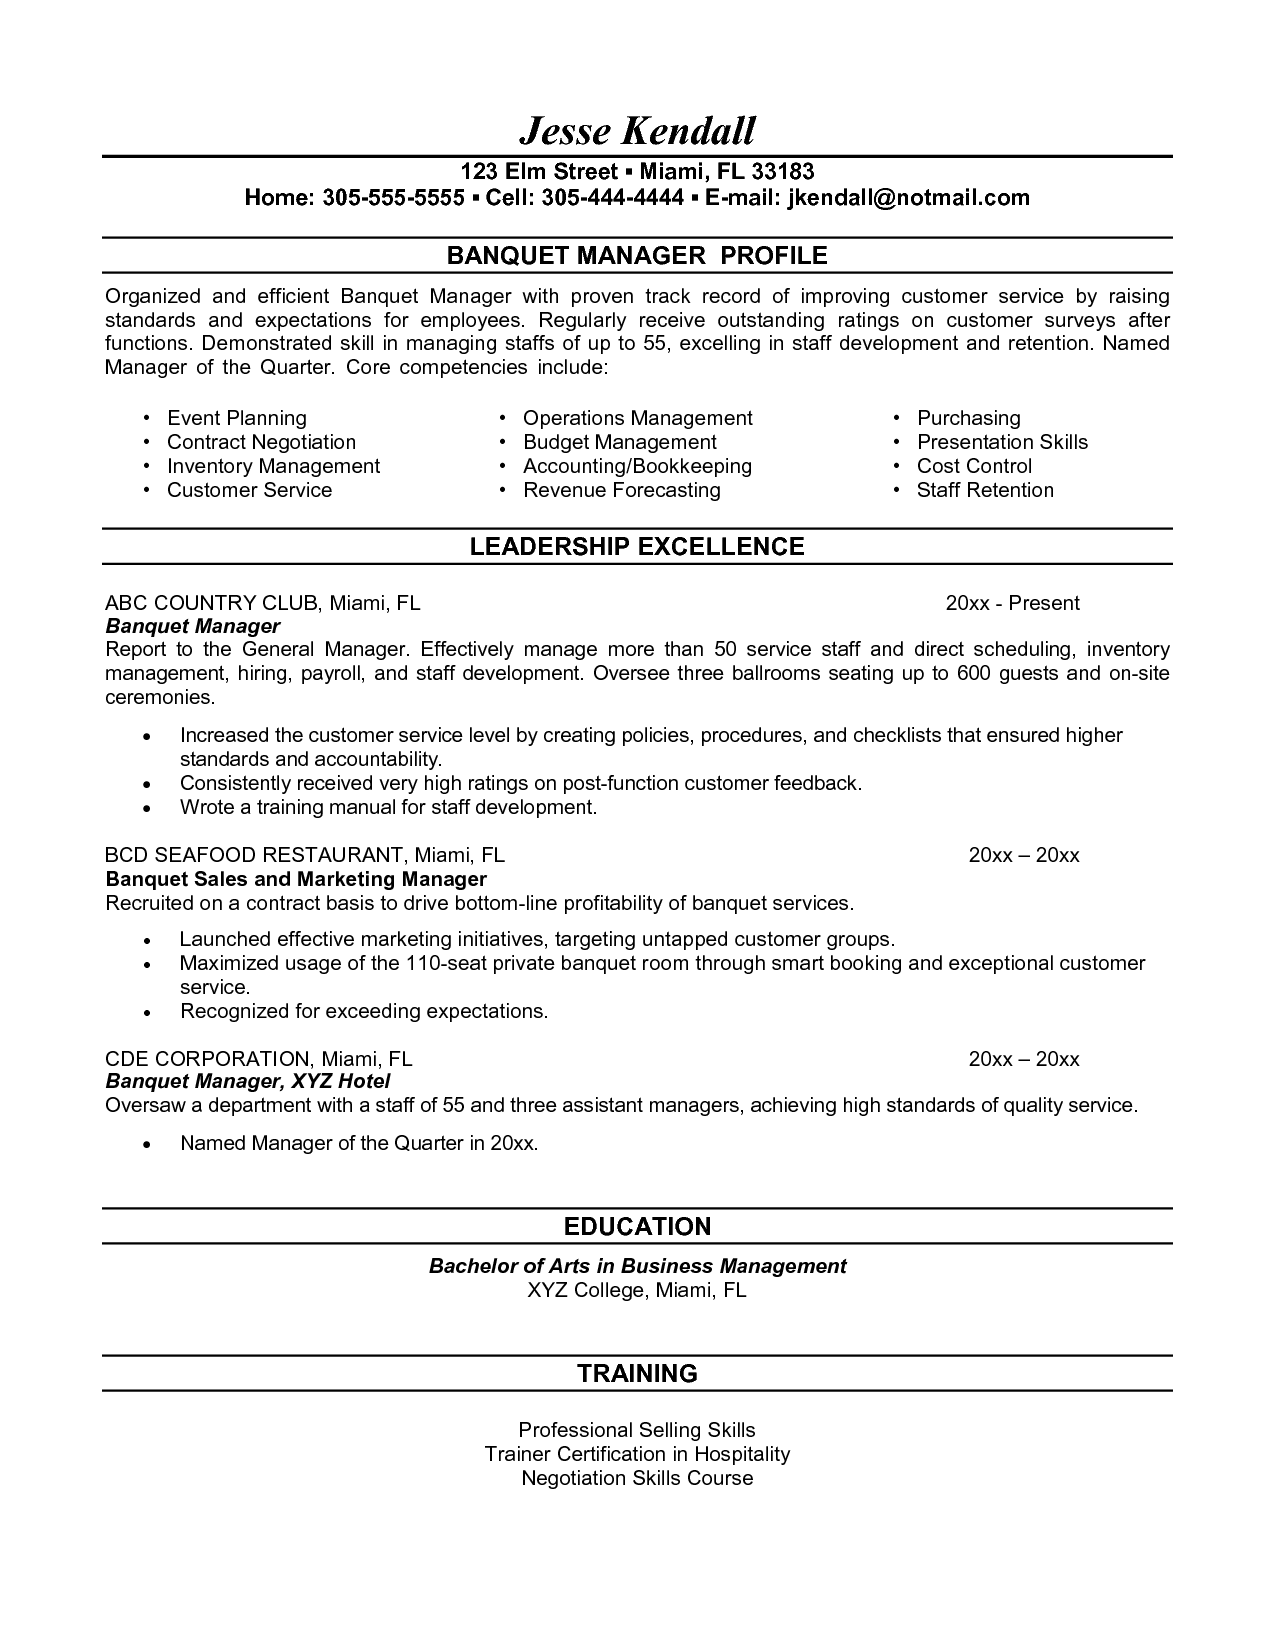 Resume Templates For Teachers Special Education Teacher Resume  School  Pinterest  Special